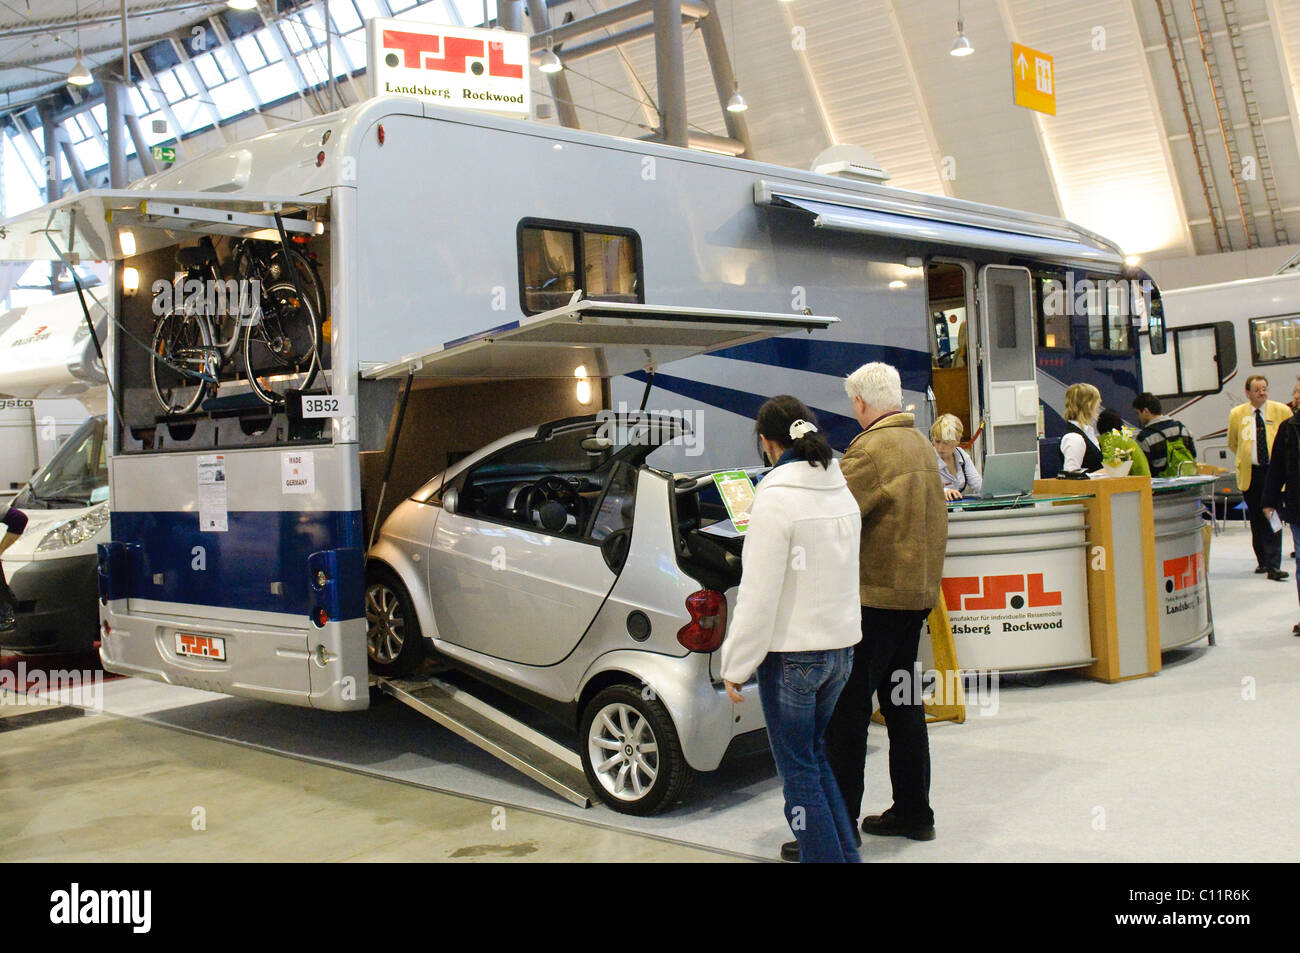 Giant Luxury Motor Home By Tsl A Smart Car Can Park